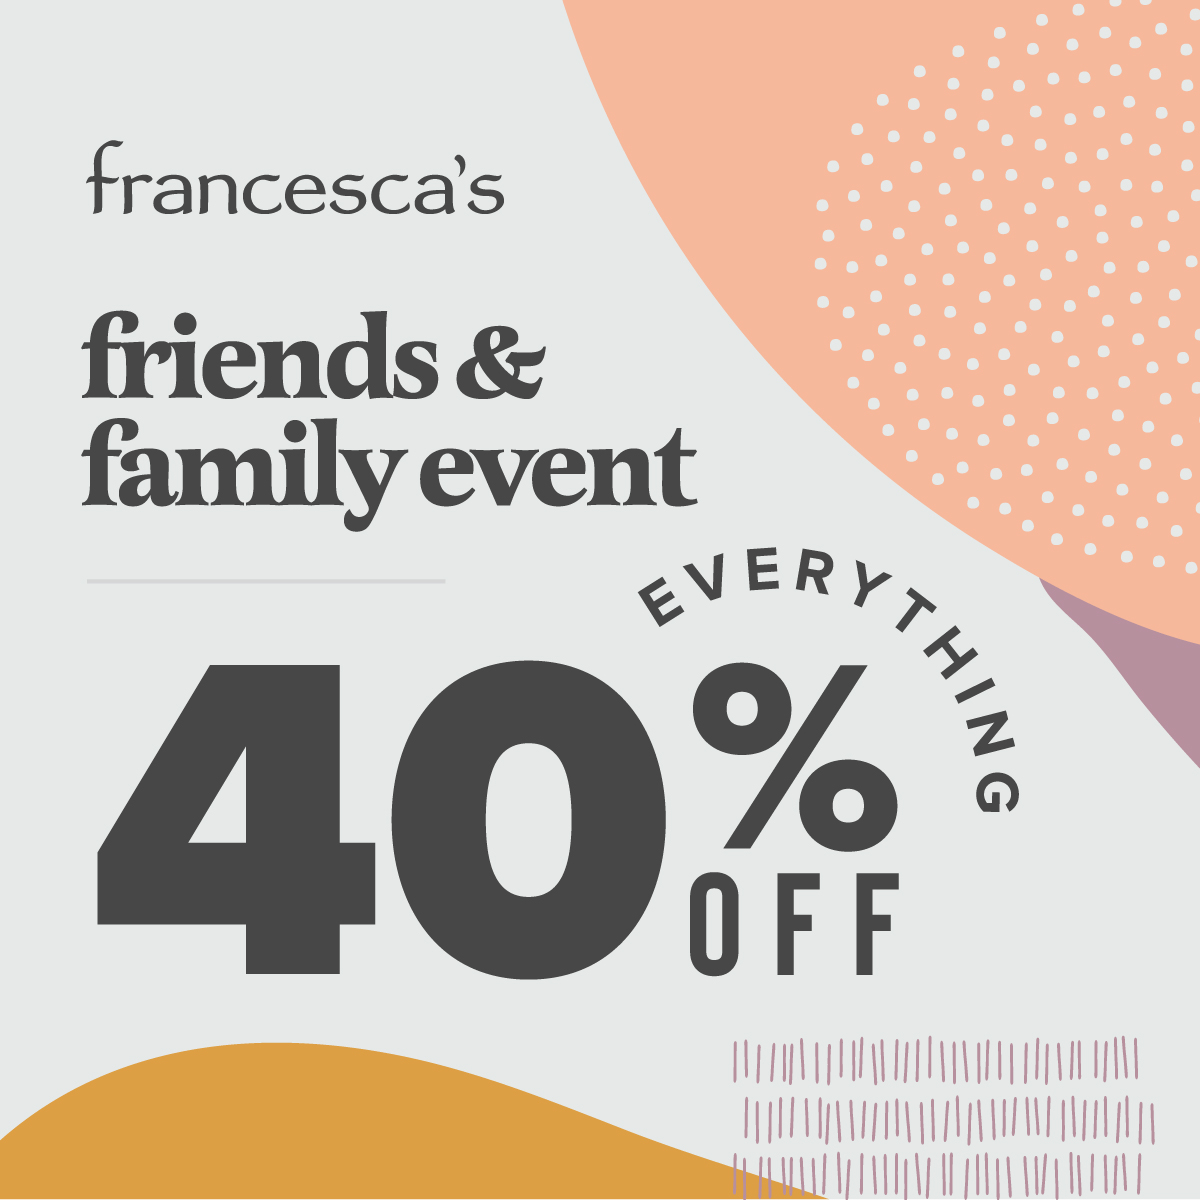 Friends & Family Is Here from francesca's